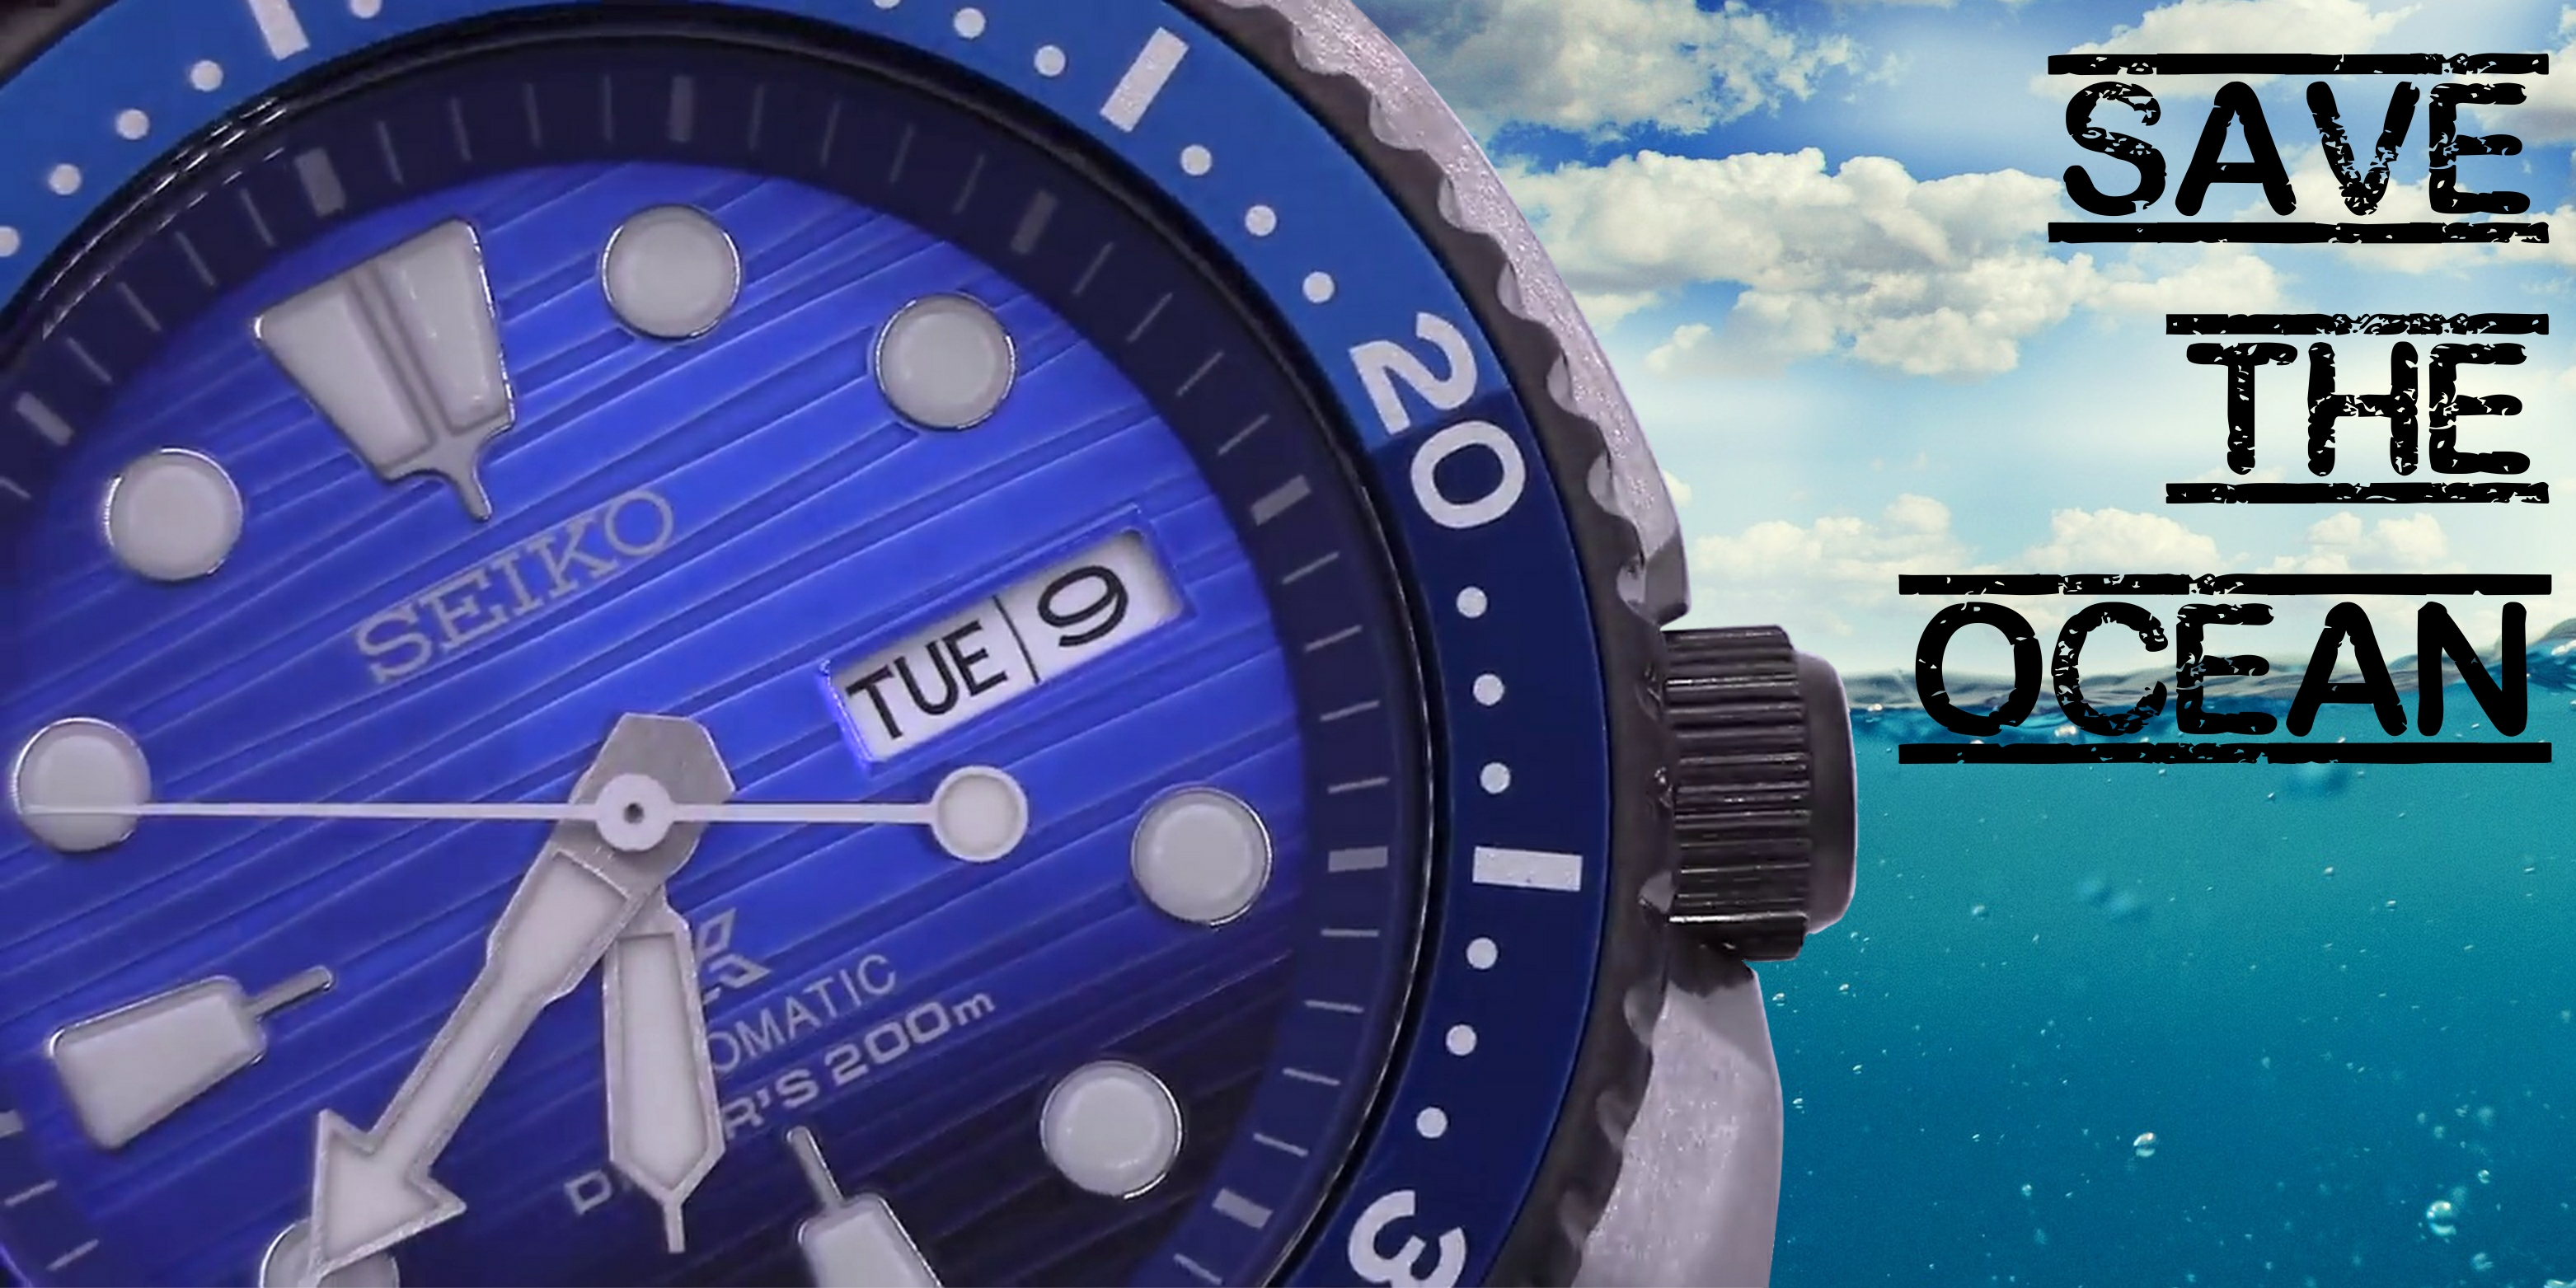 seiko-prospex-save-the-ocean-turtle.jpg